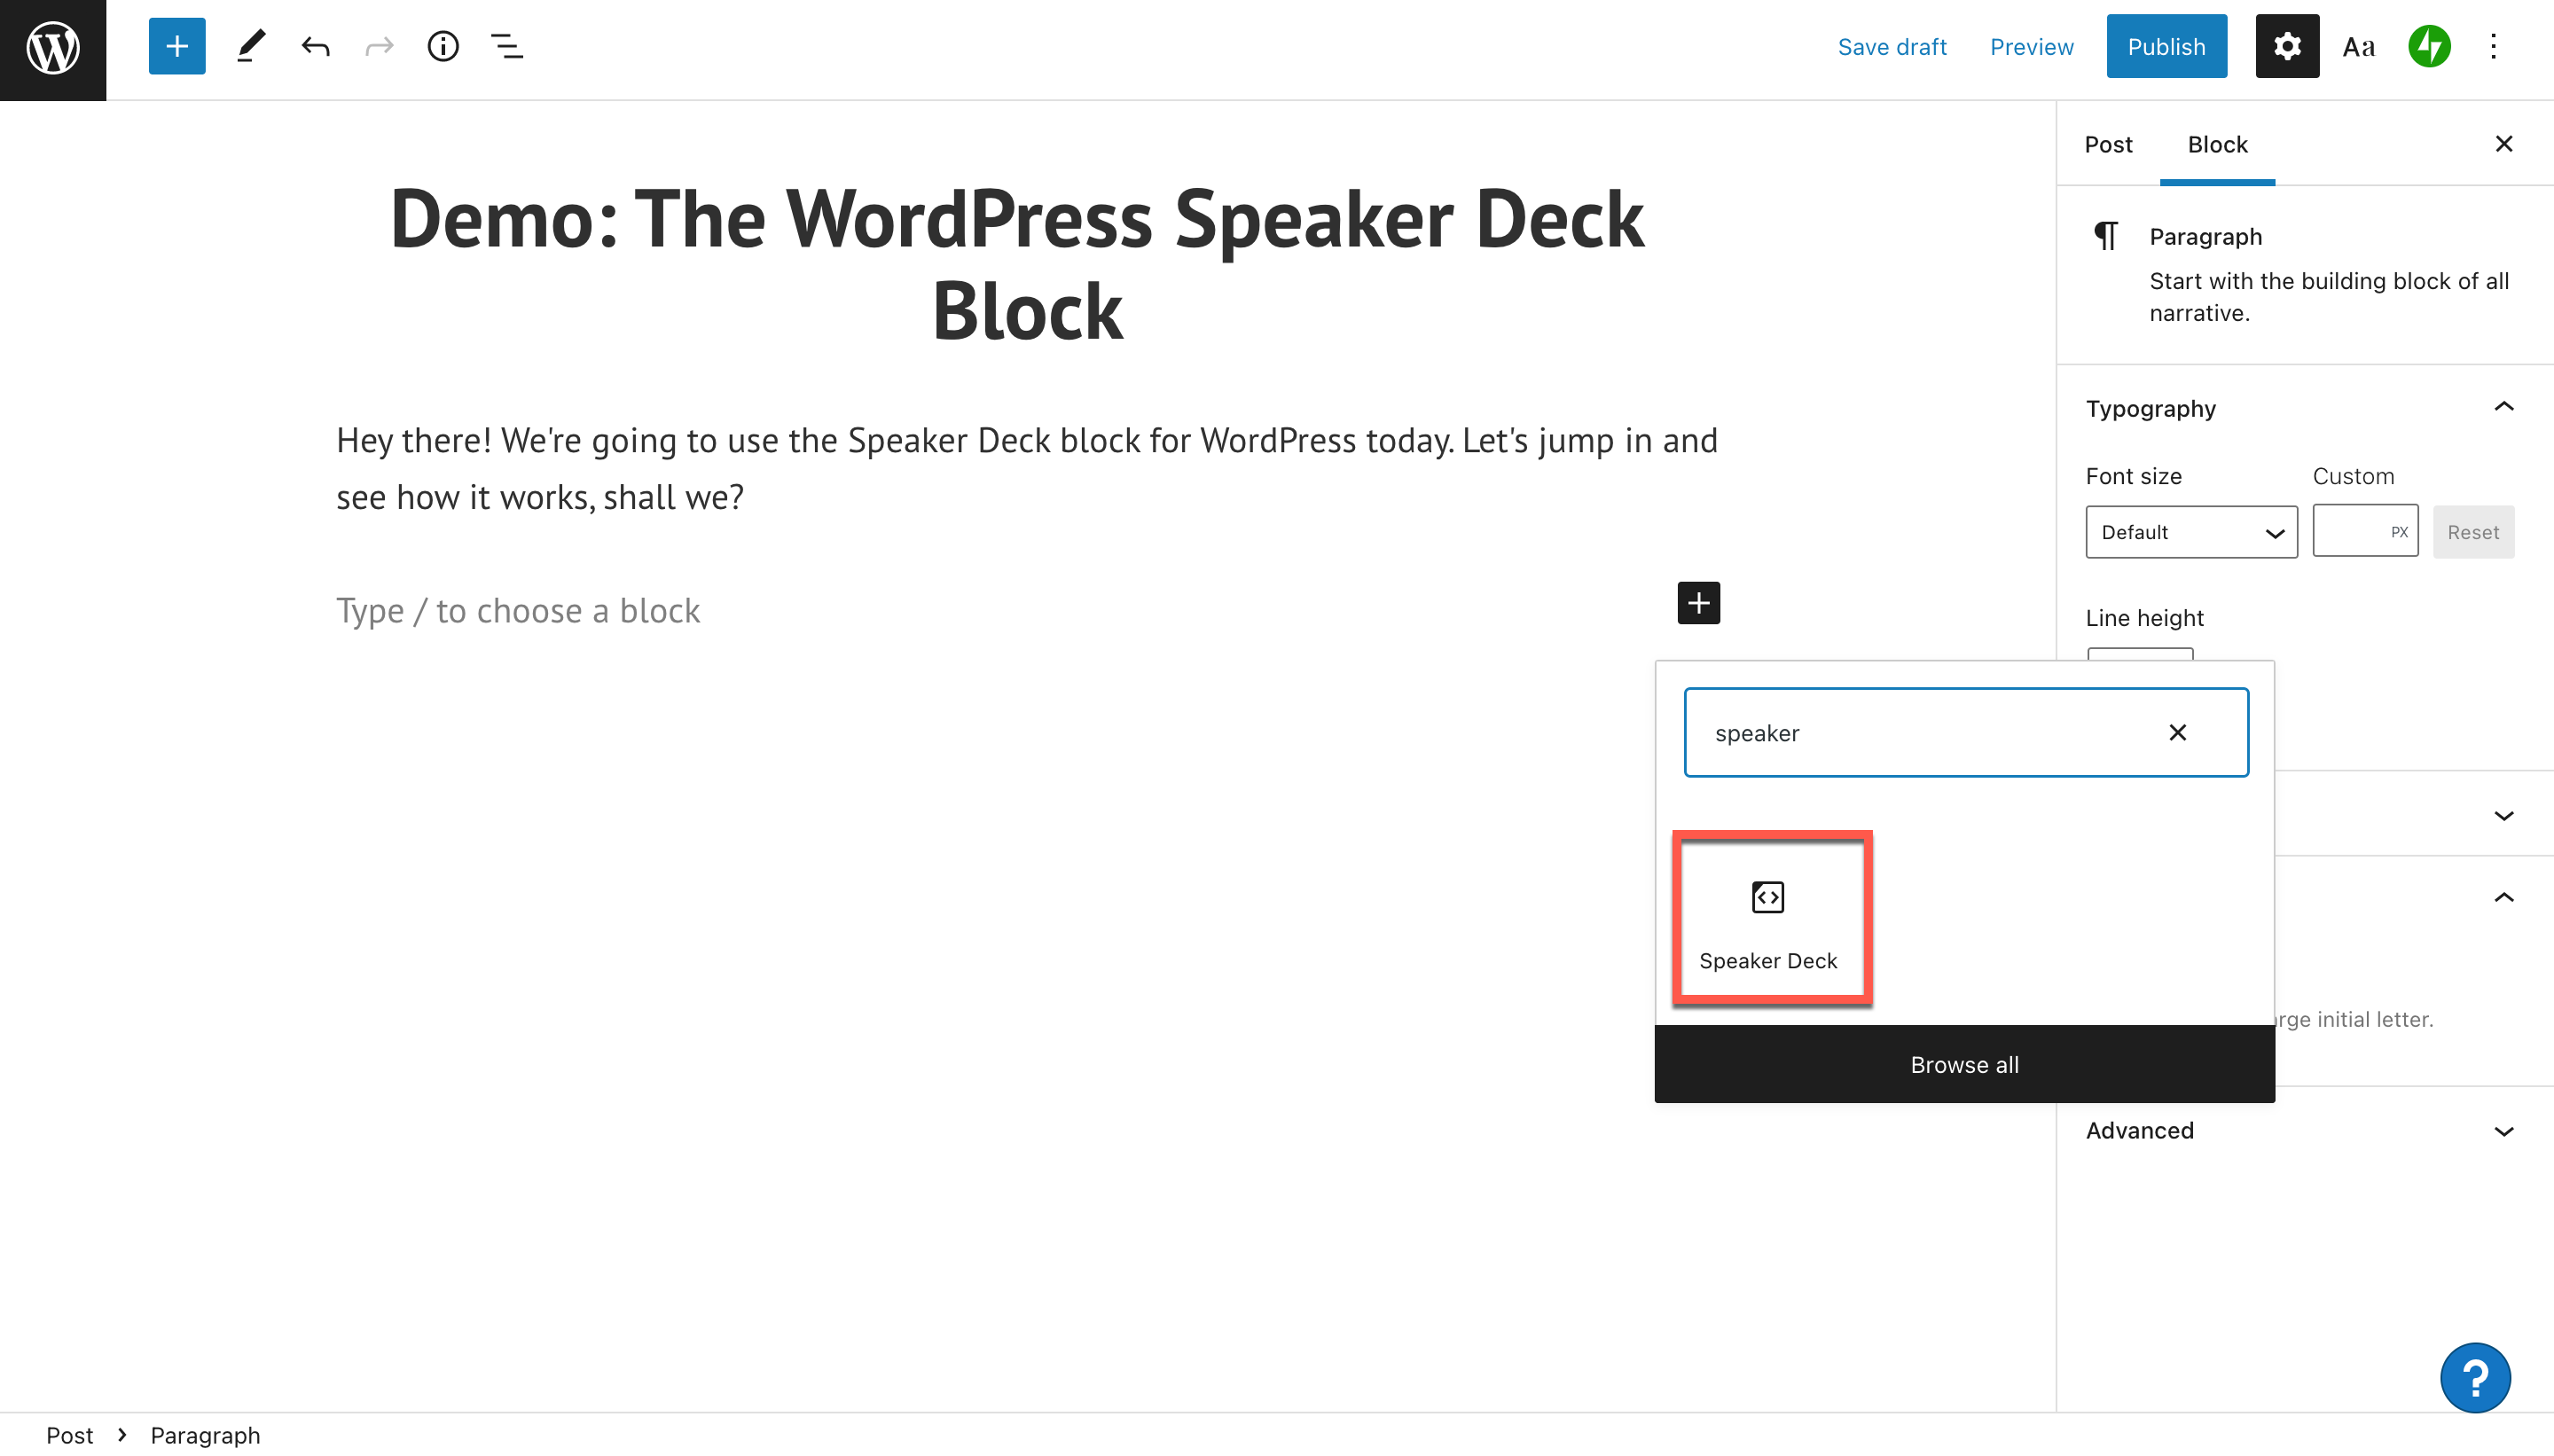 how-to-use-the-wordpress-speaker-deck-embed-block-2 如何使用 WordPress Speaker Deck 嵌入块